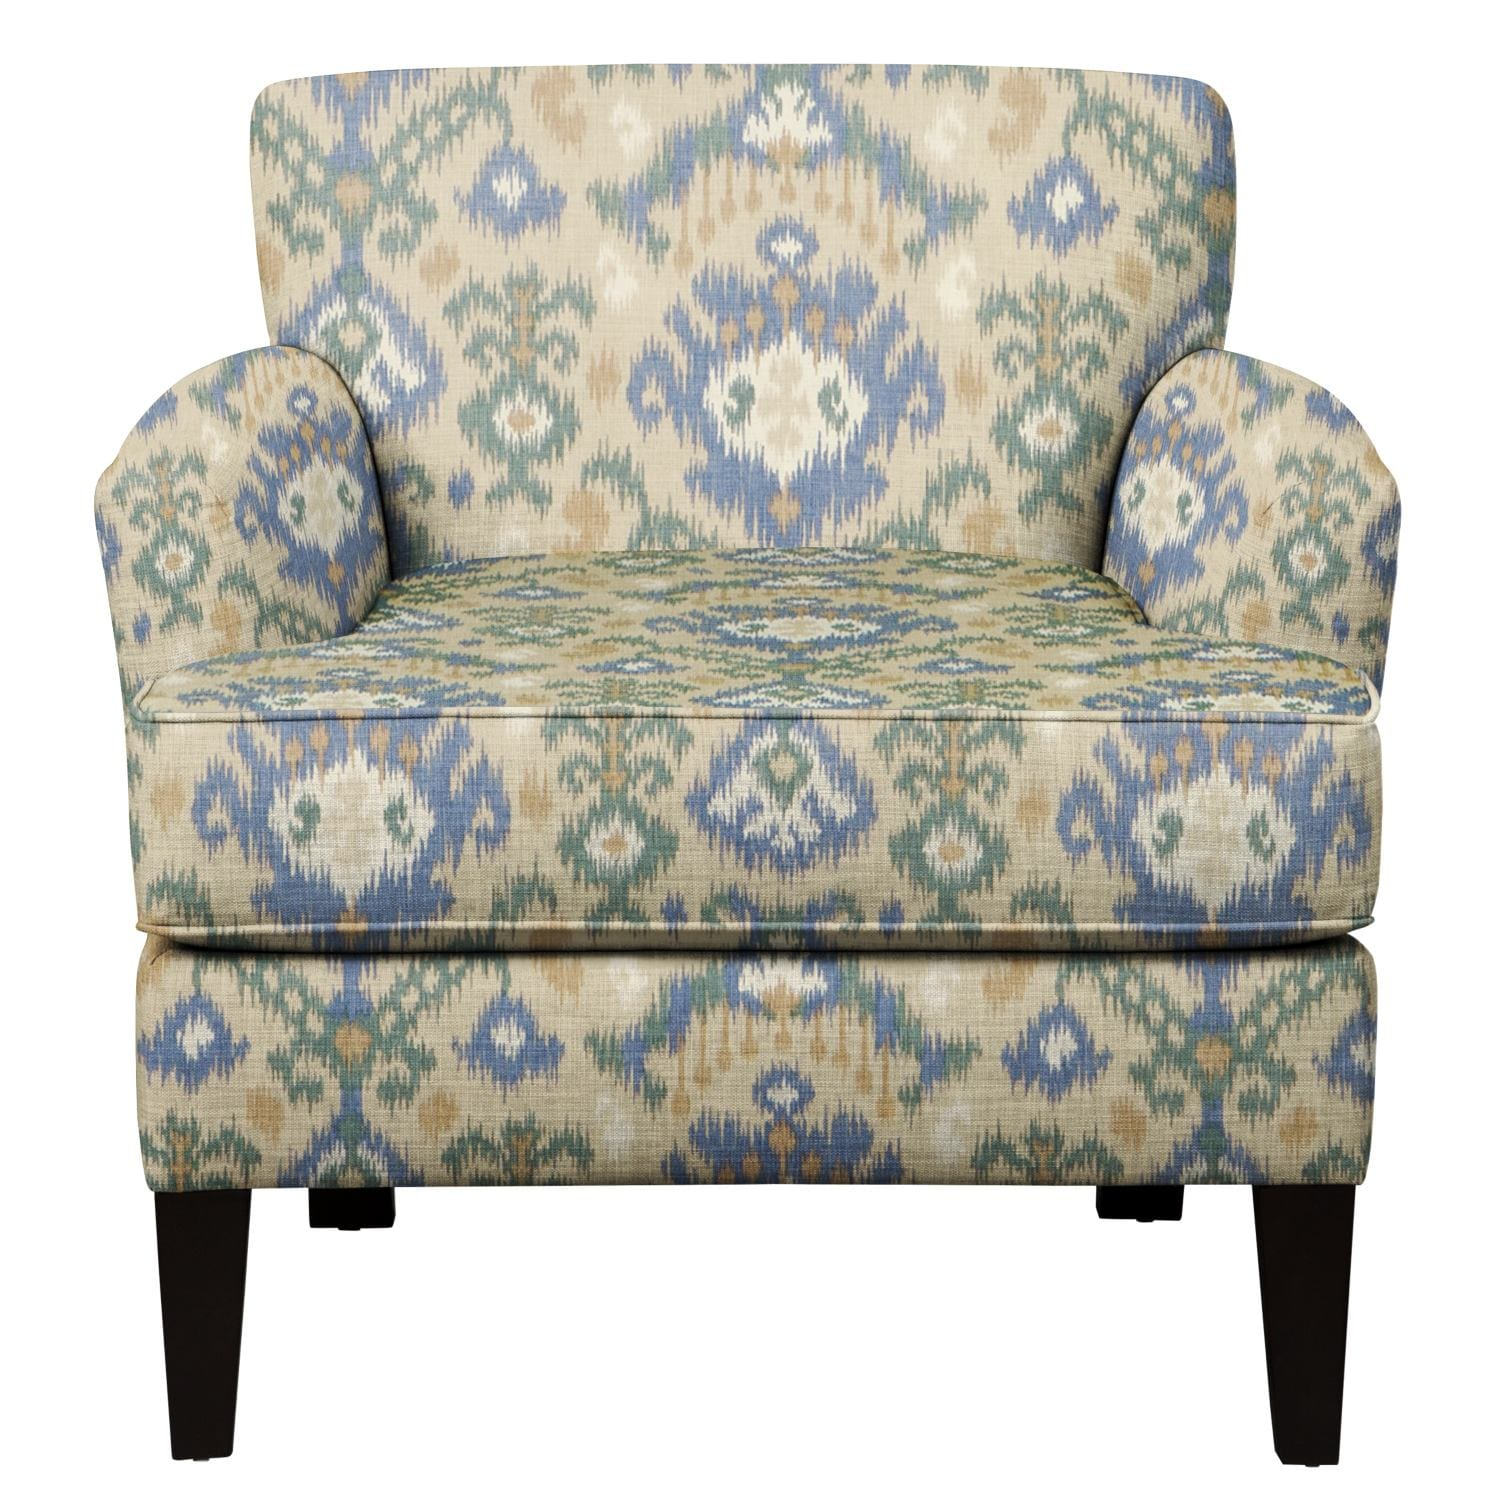 Wondrous Marcus Chair W Blurred Lines Big Sky Fabric Ocoug Best Dining Table And Chair Ideas Images Ocougorg